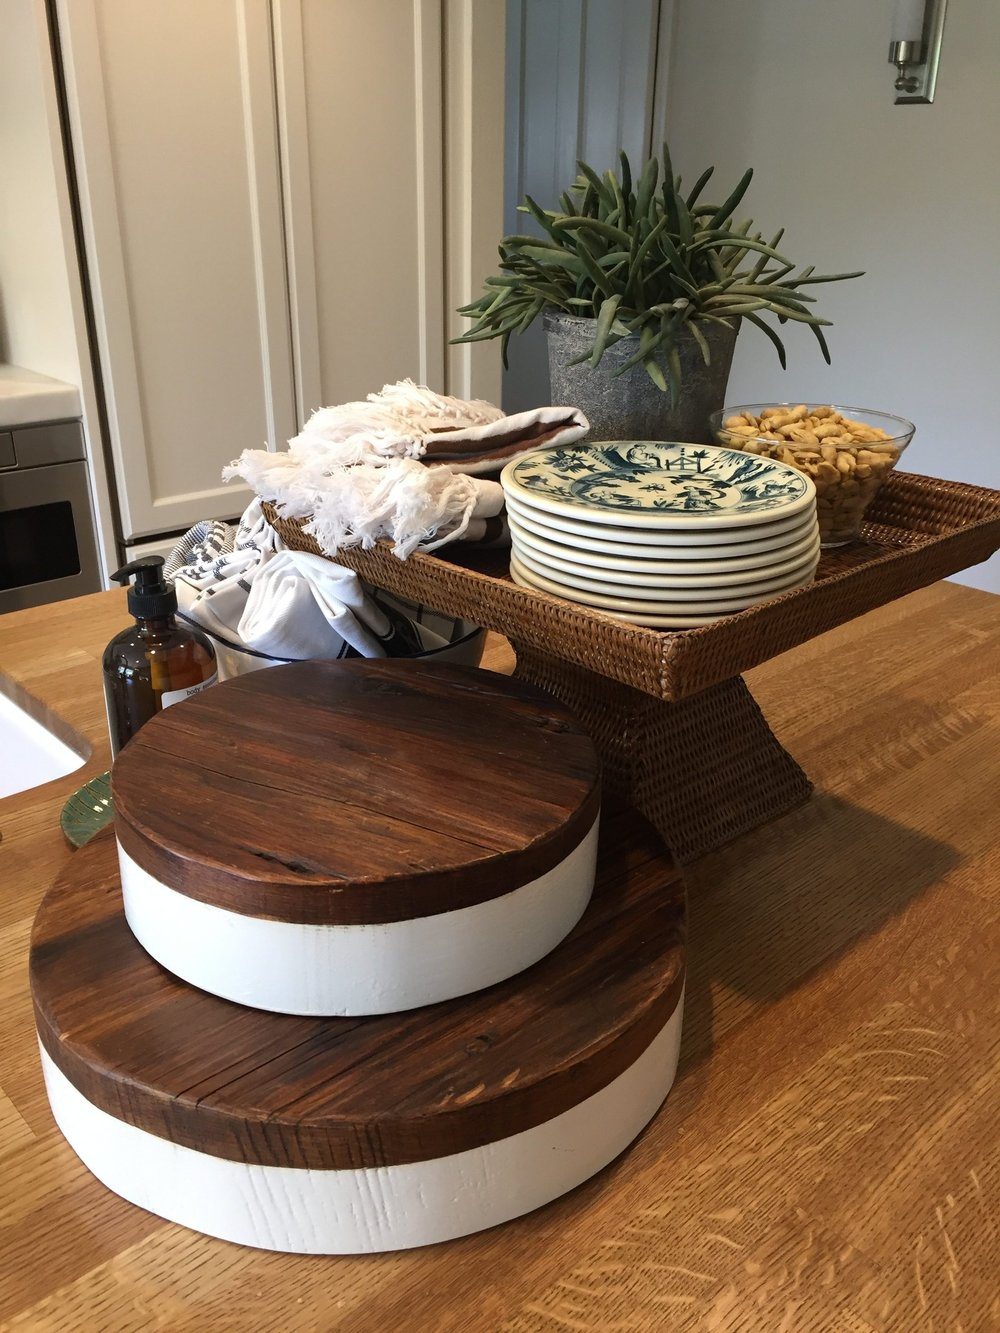 Perfect example of what to do on an island. Love these round cutting boards with the woven pedestal